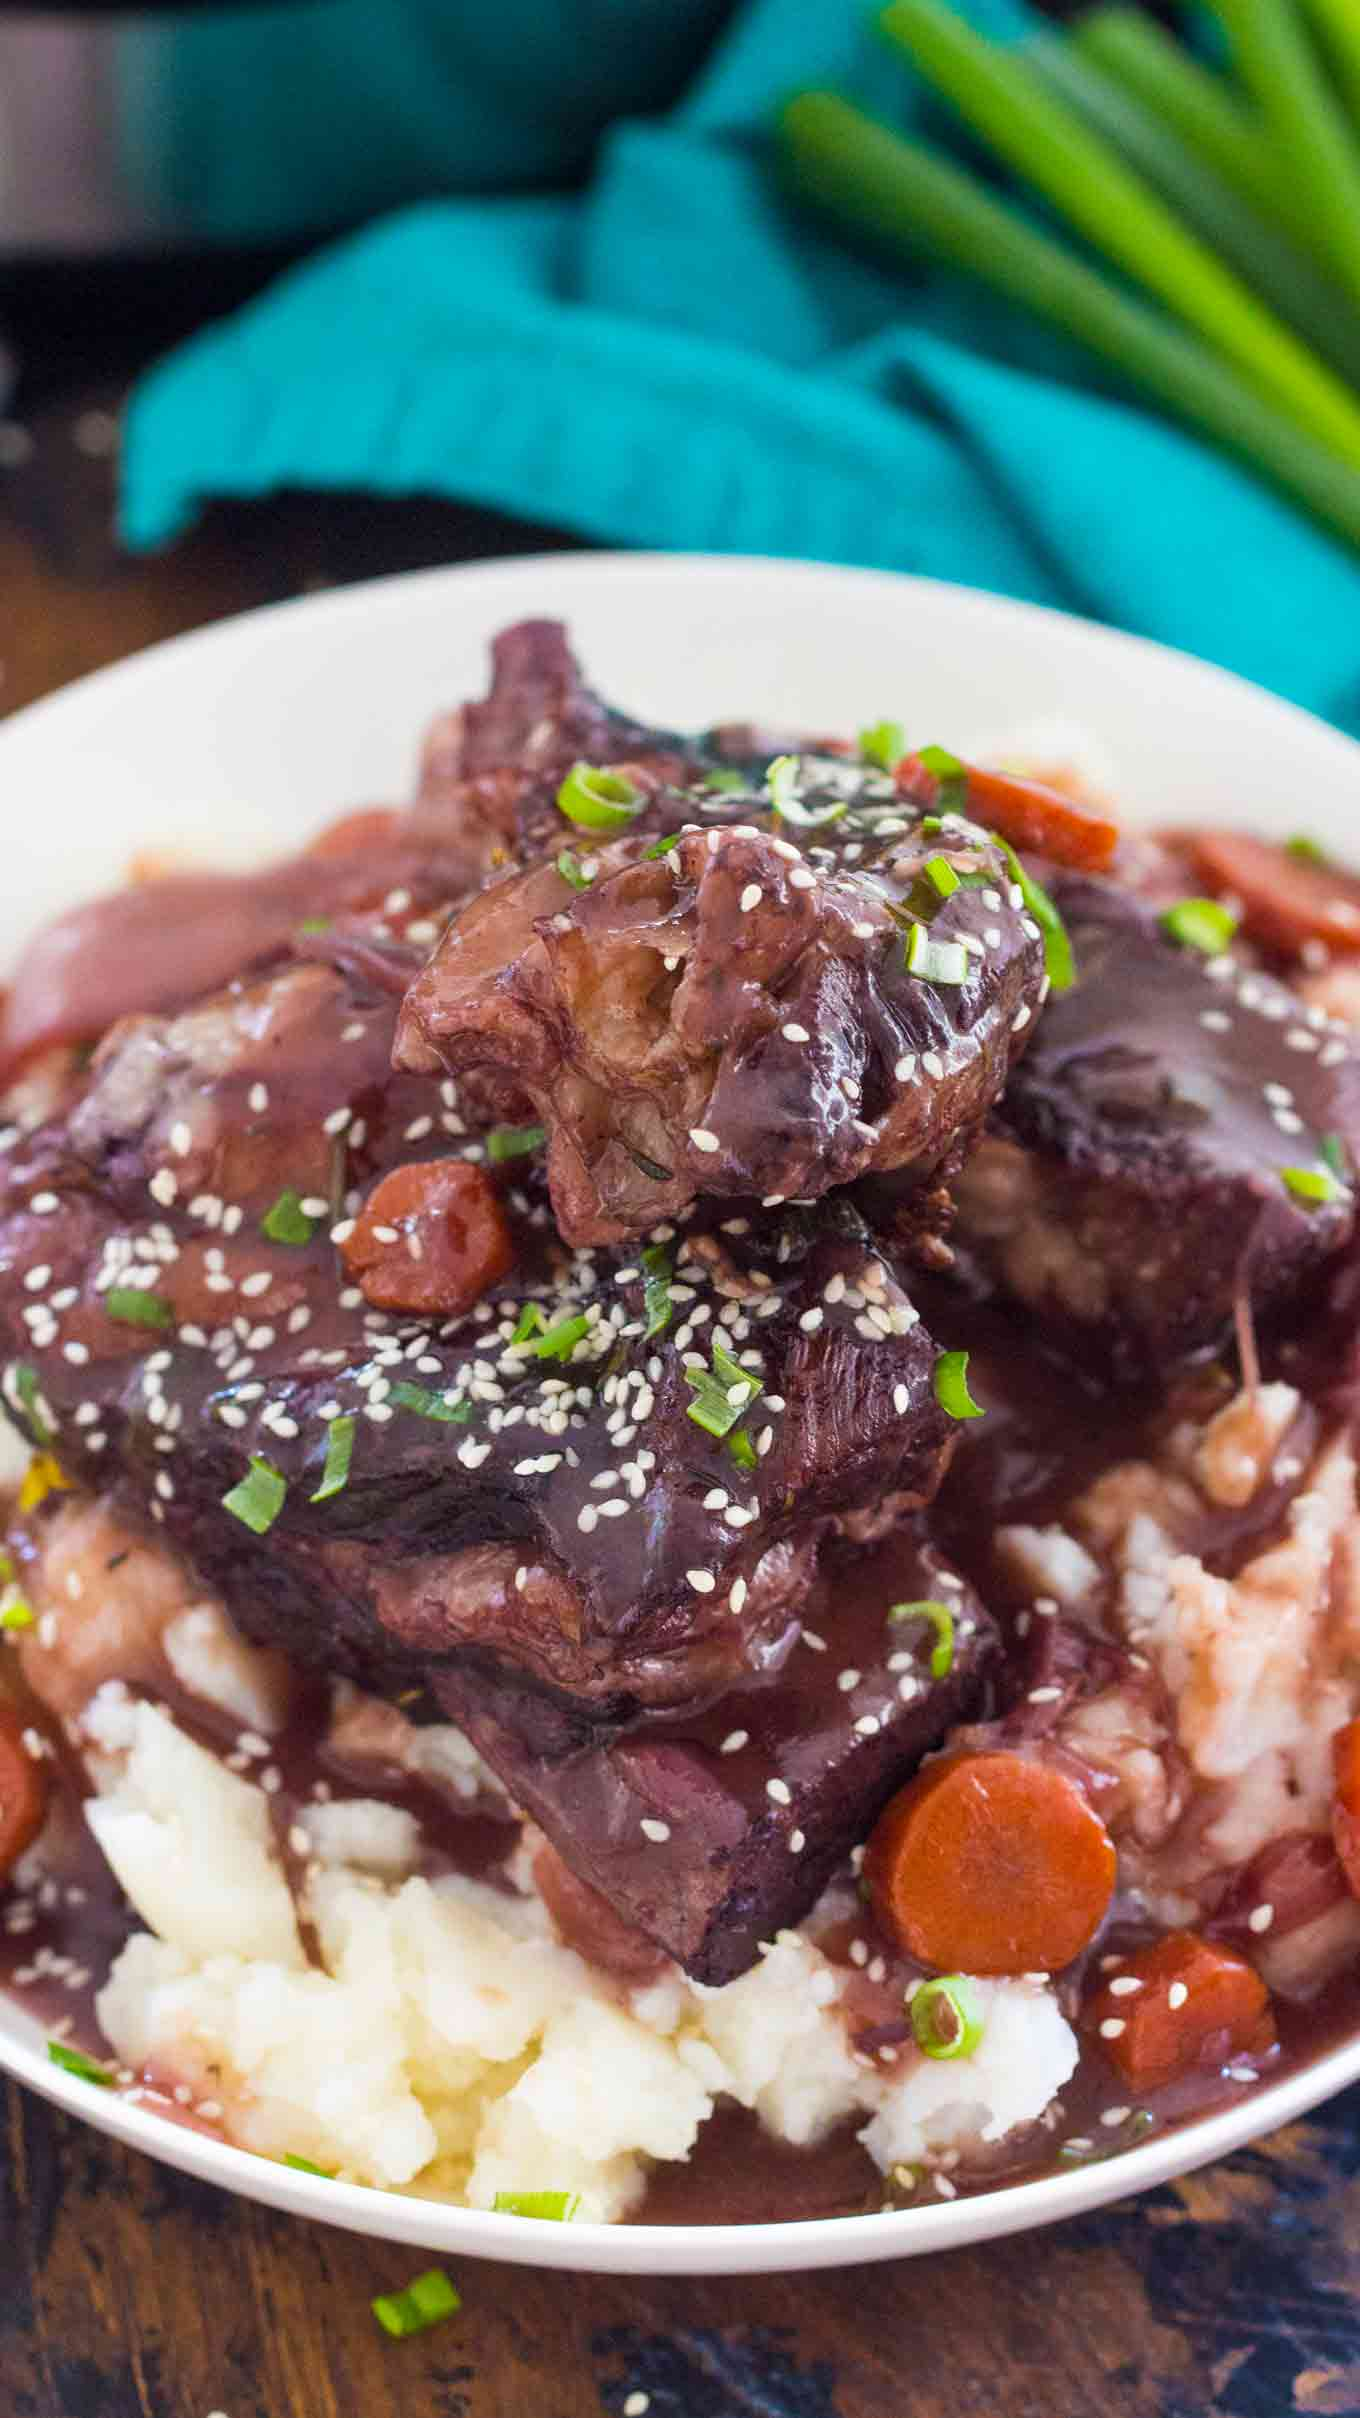 Best Instant Pot Short Ribs are juicy and fall of the bone, cooked in the most amazing garlic and wine sauce, and ready to eat in just 2 hours!